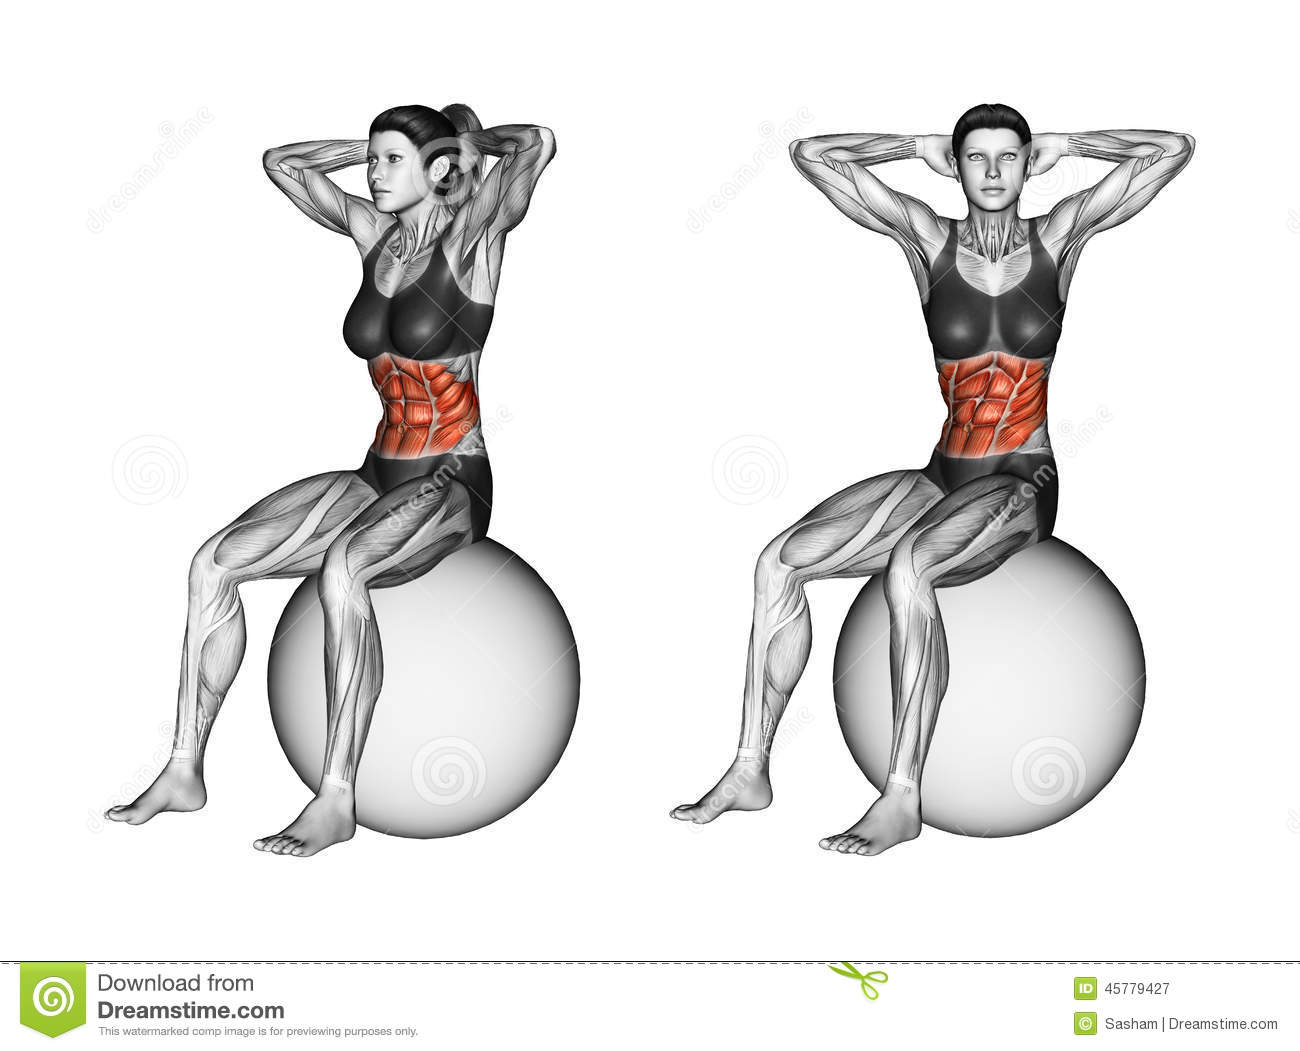 Fitball exercising. Turns torso sitting on fitball. Female